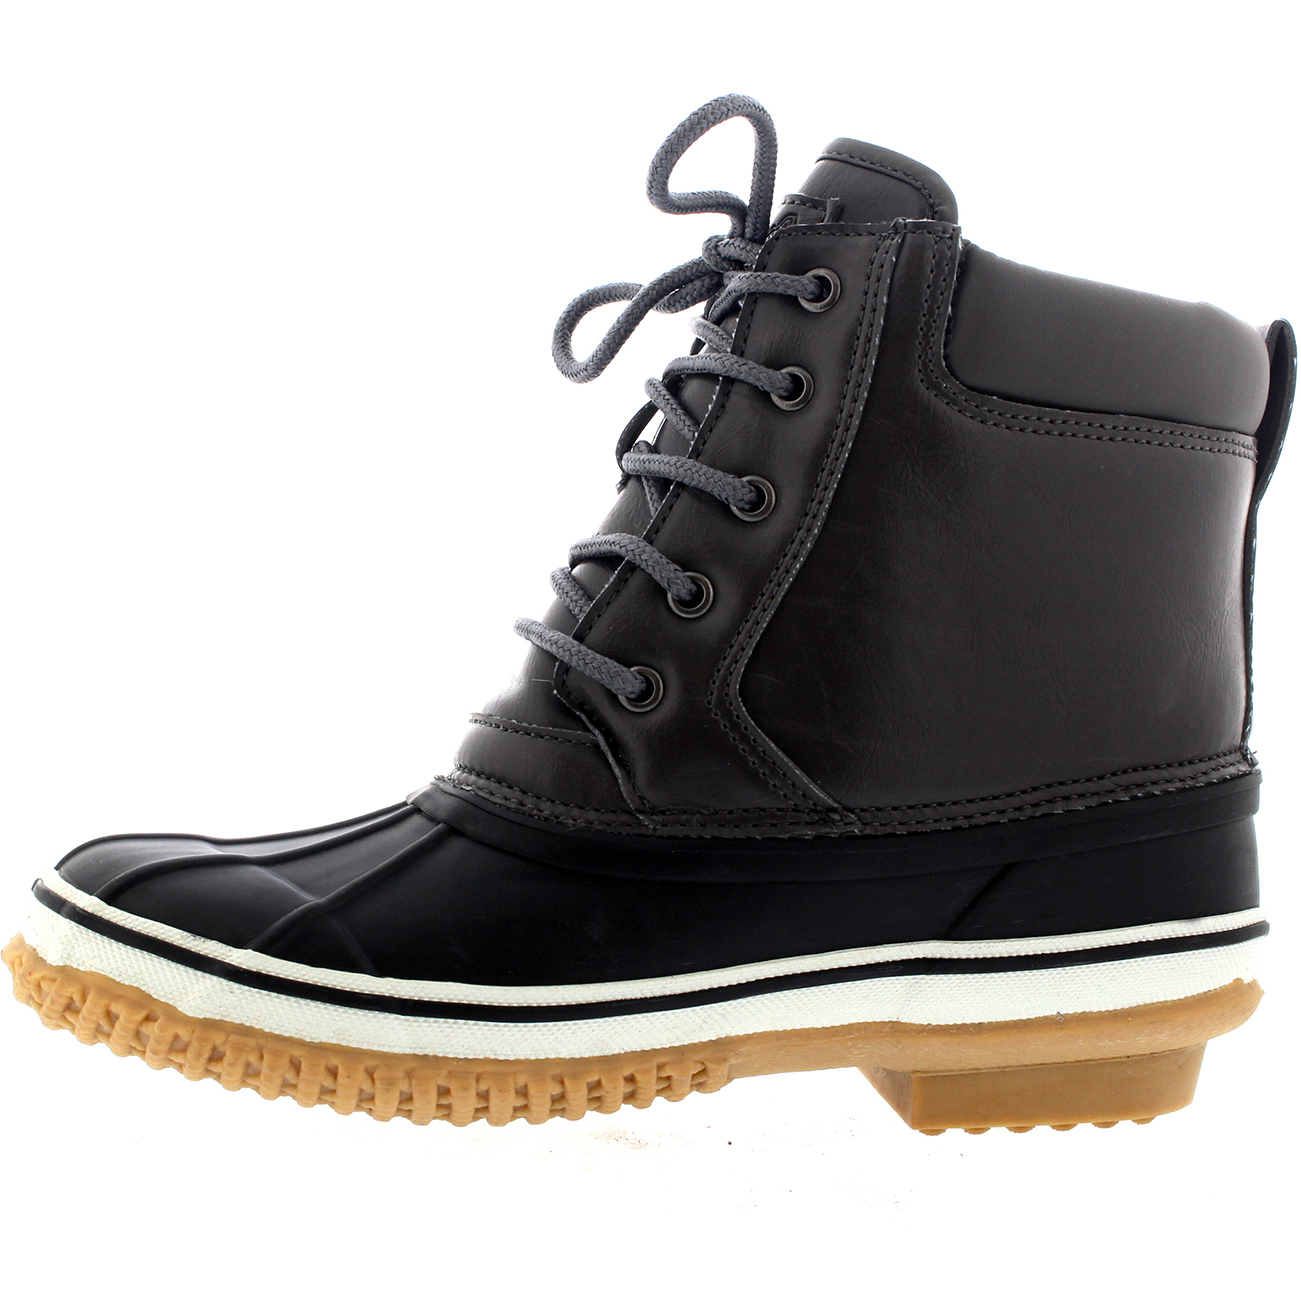 Elegant Clothing Shoes Accessories Gt Women39s Shoes Gt Boots